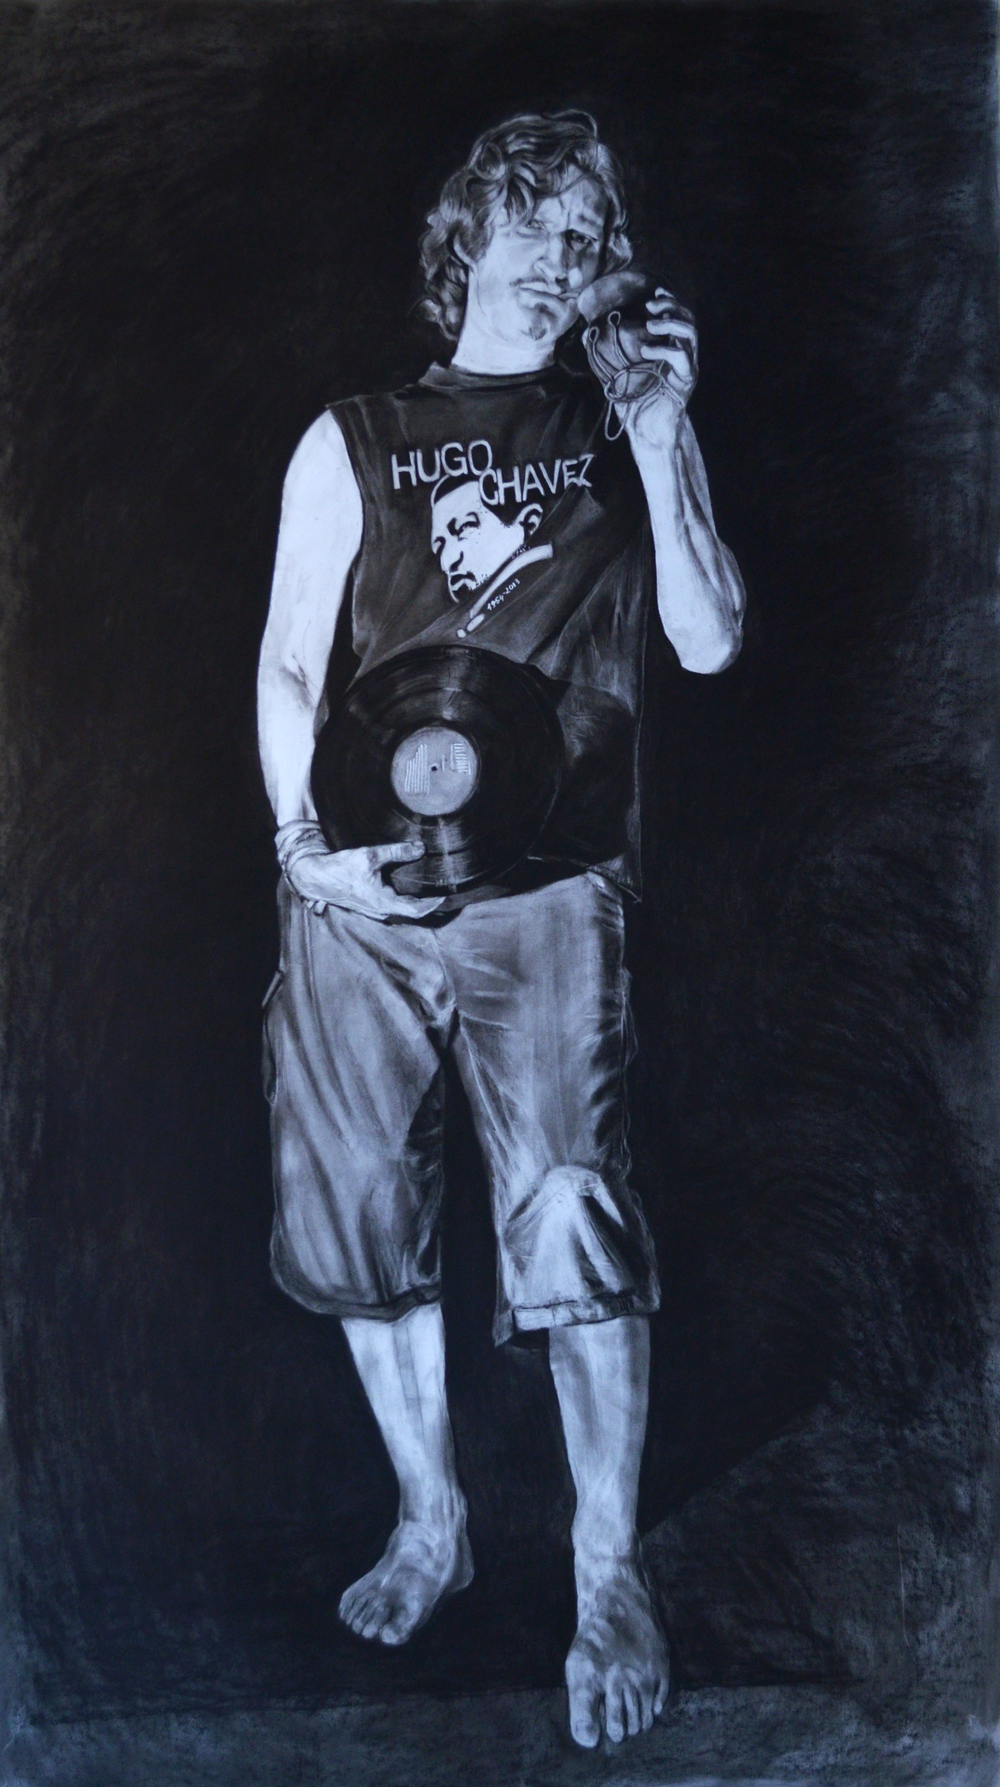 """Franco Bianco"" - drawing, pastel on paper, 120 x 200 cm, 2014"